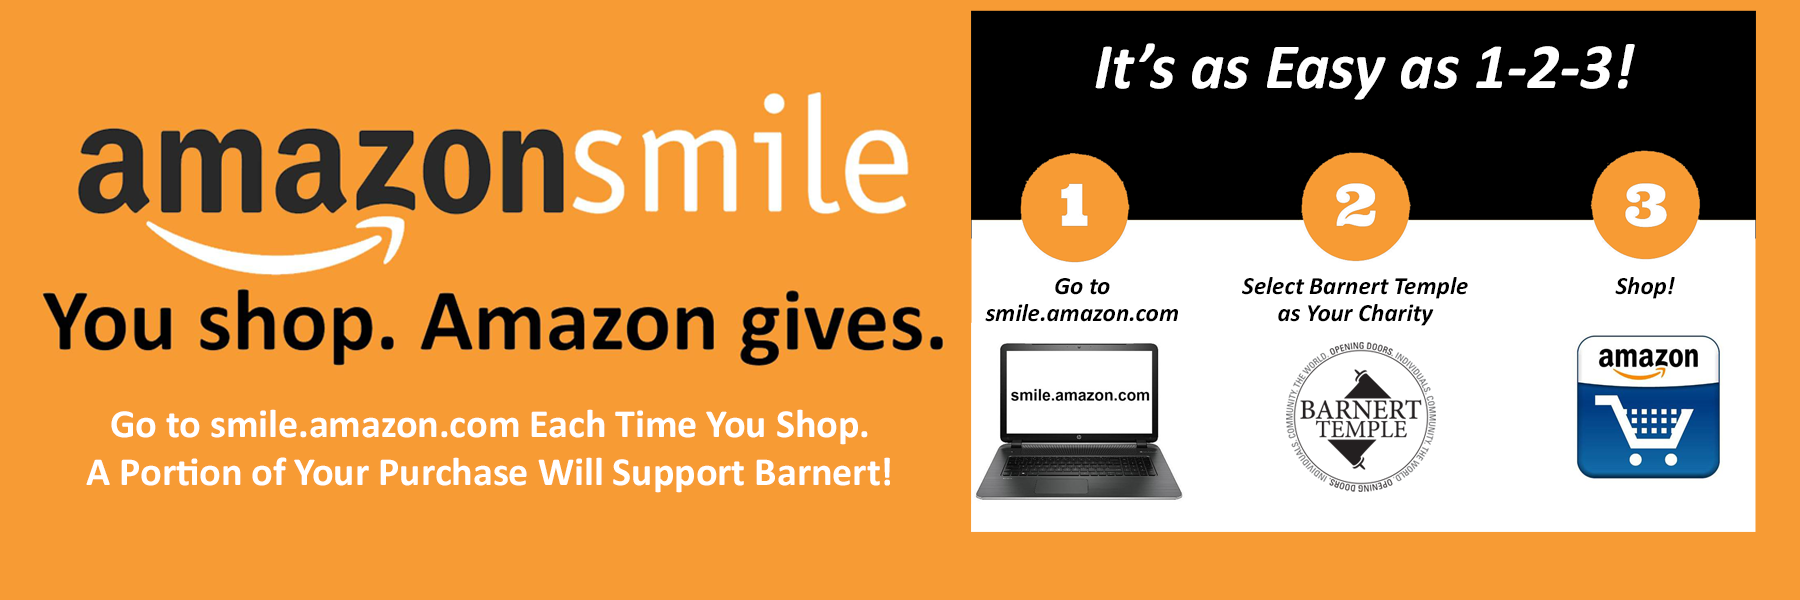 """<a href=""""https://www.barnerttemple.org/amazonsmile""""                                     target=""""_blank"""">                                                                 <span class=""""slider_title"""">                                     You Shop and Barnert Earns!                                </span>                                                                 </a>                                                                                                                                                                                       <span class=""""slider_description"""">Simply sign up and go to smile.amazon.com whenever you shop at Amazon.  Barnert will earn a percentage of your purchases.  Set it up and forget about it.  It's really that easy!  Click above for details.</span>"""